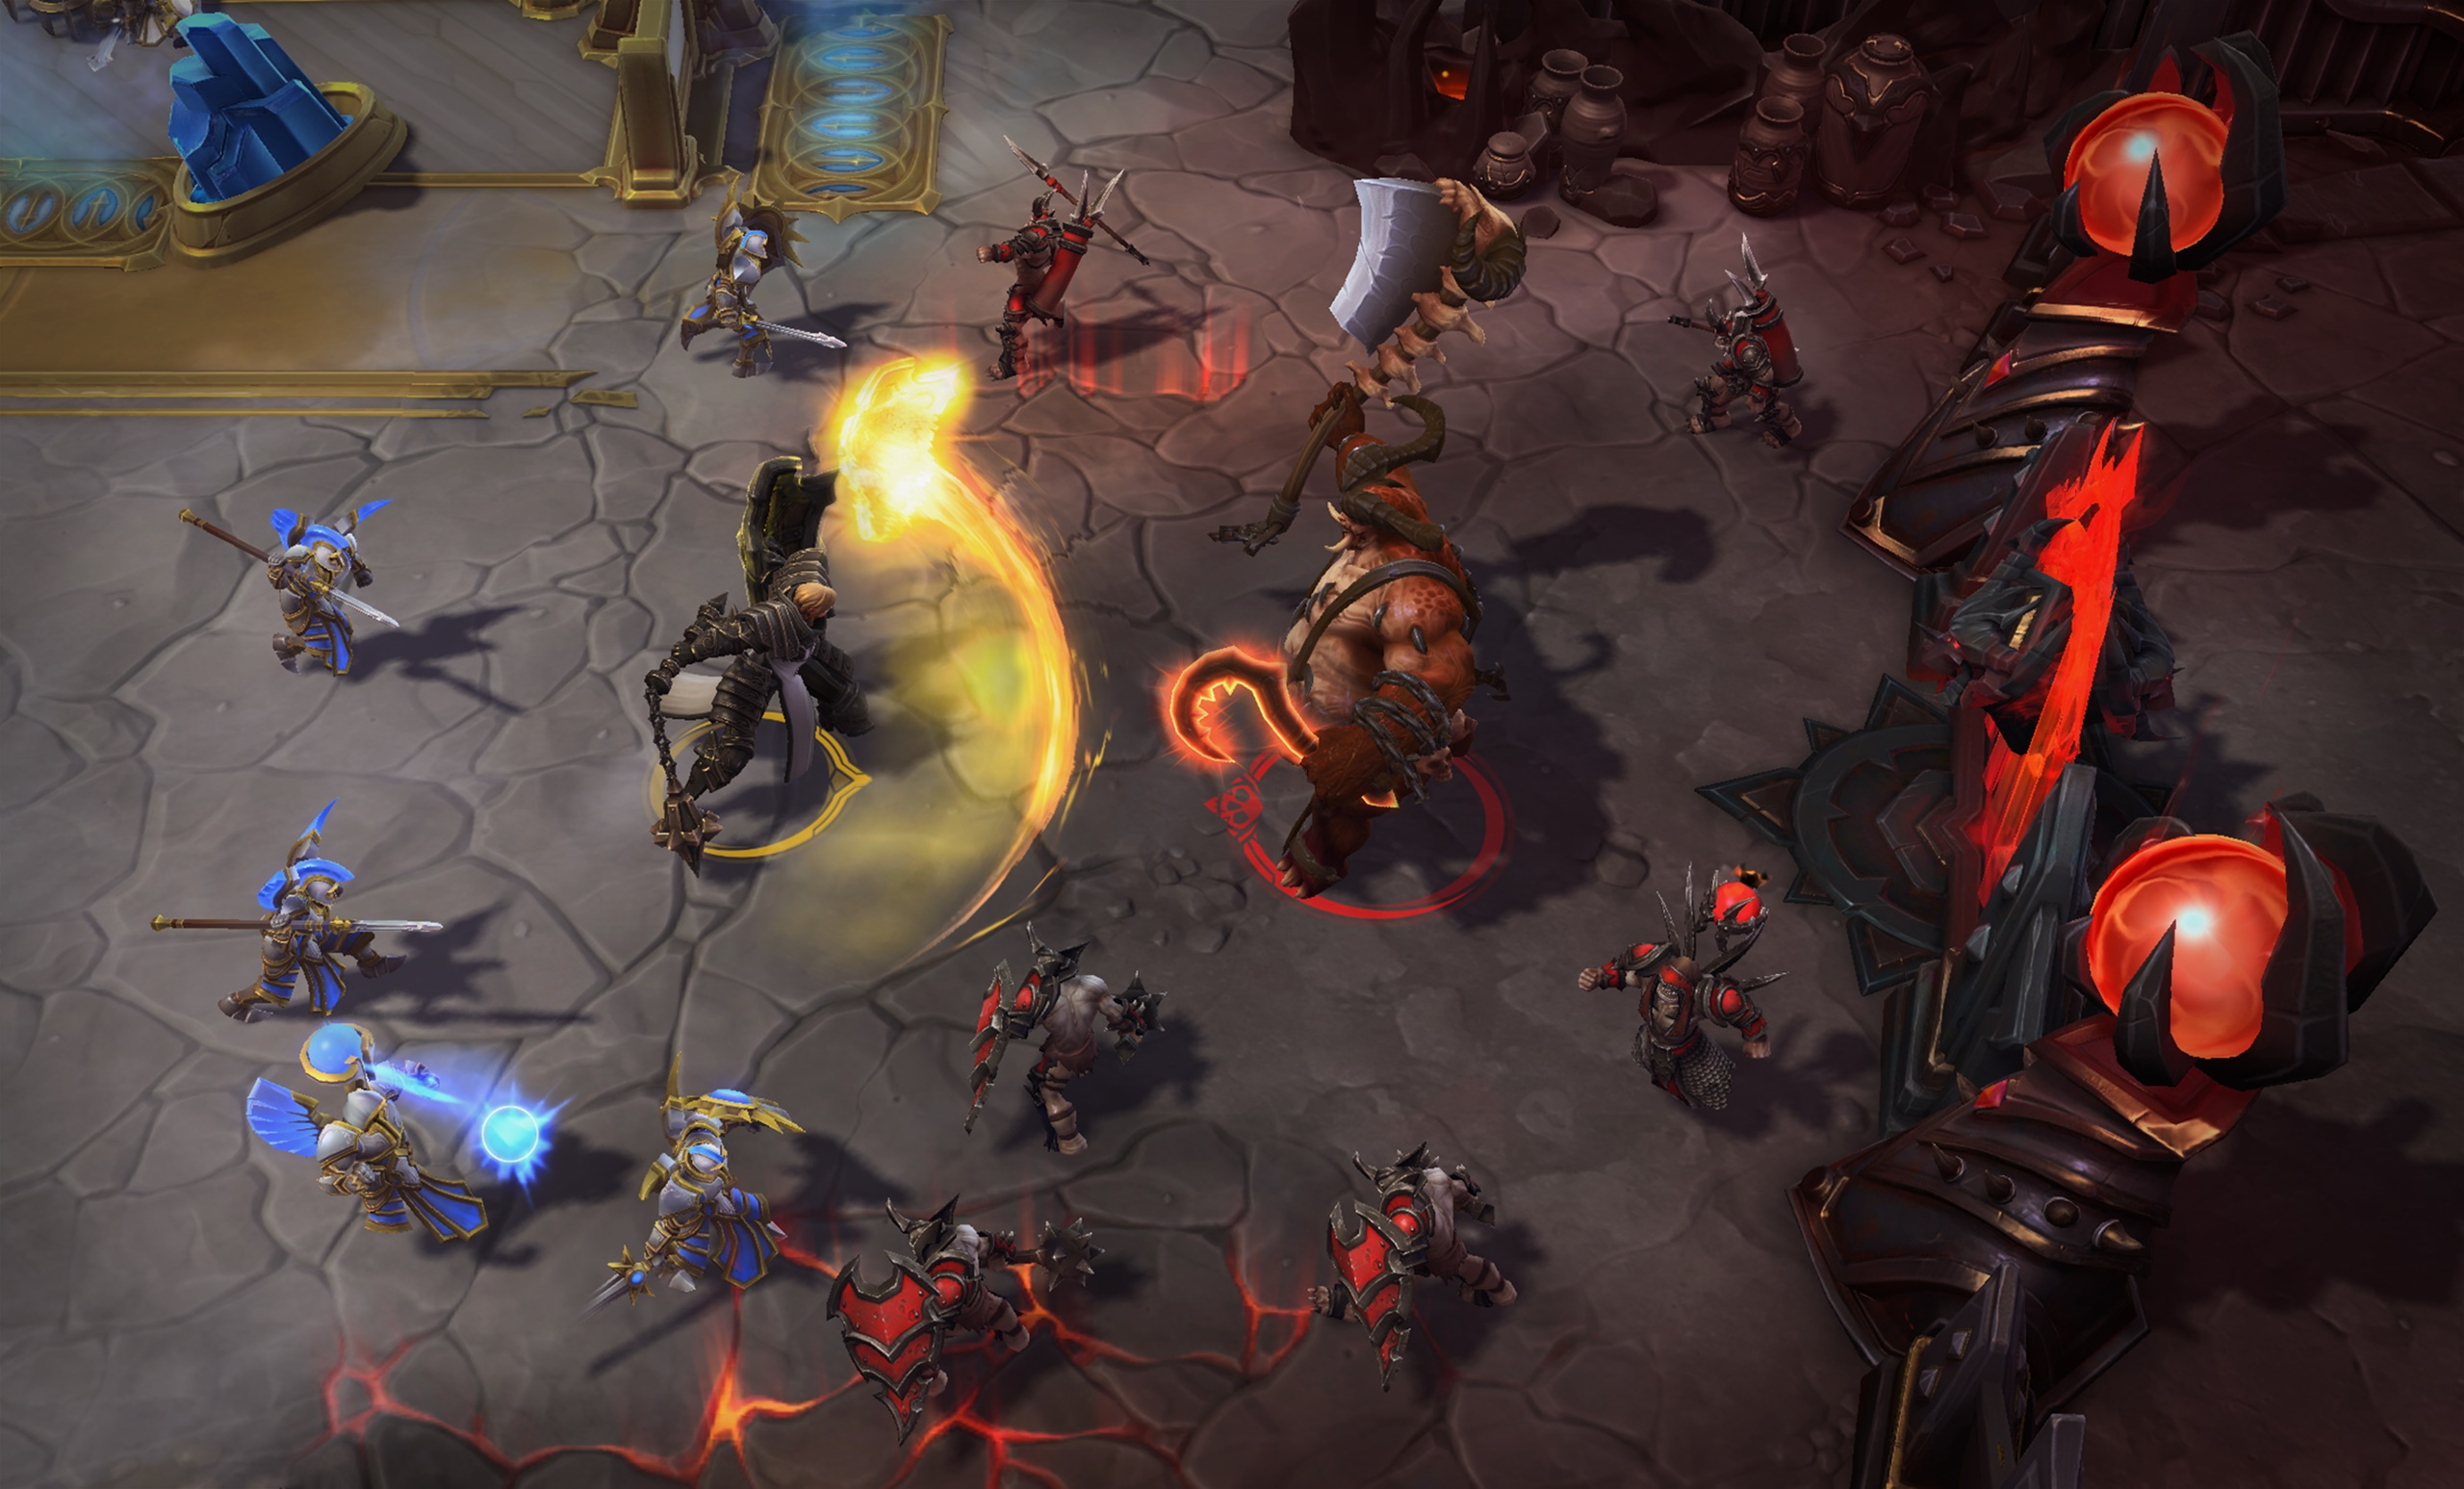 Heroes Of The Storm Will Keep Butchers Reputation Intact By Making Him An Extremely Formidable Melee Assassin Who Can Add To His Attack Power